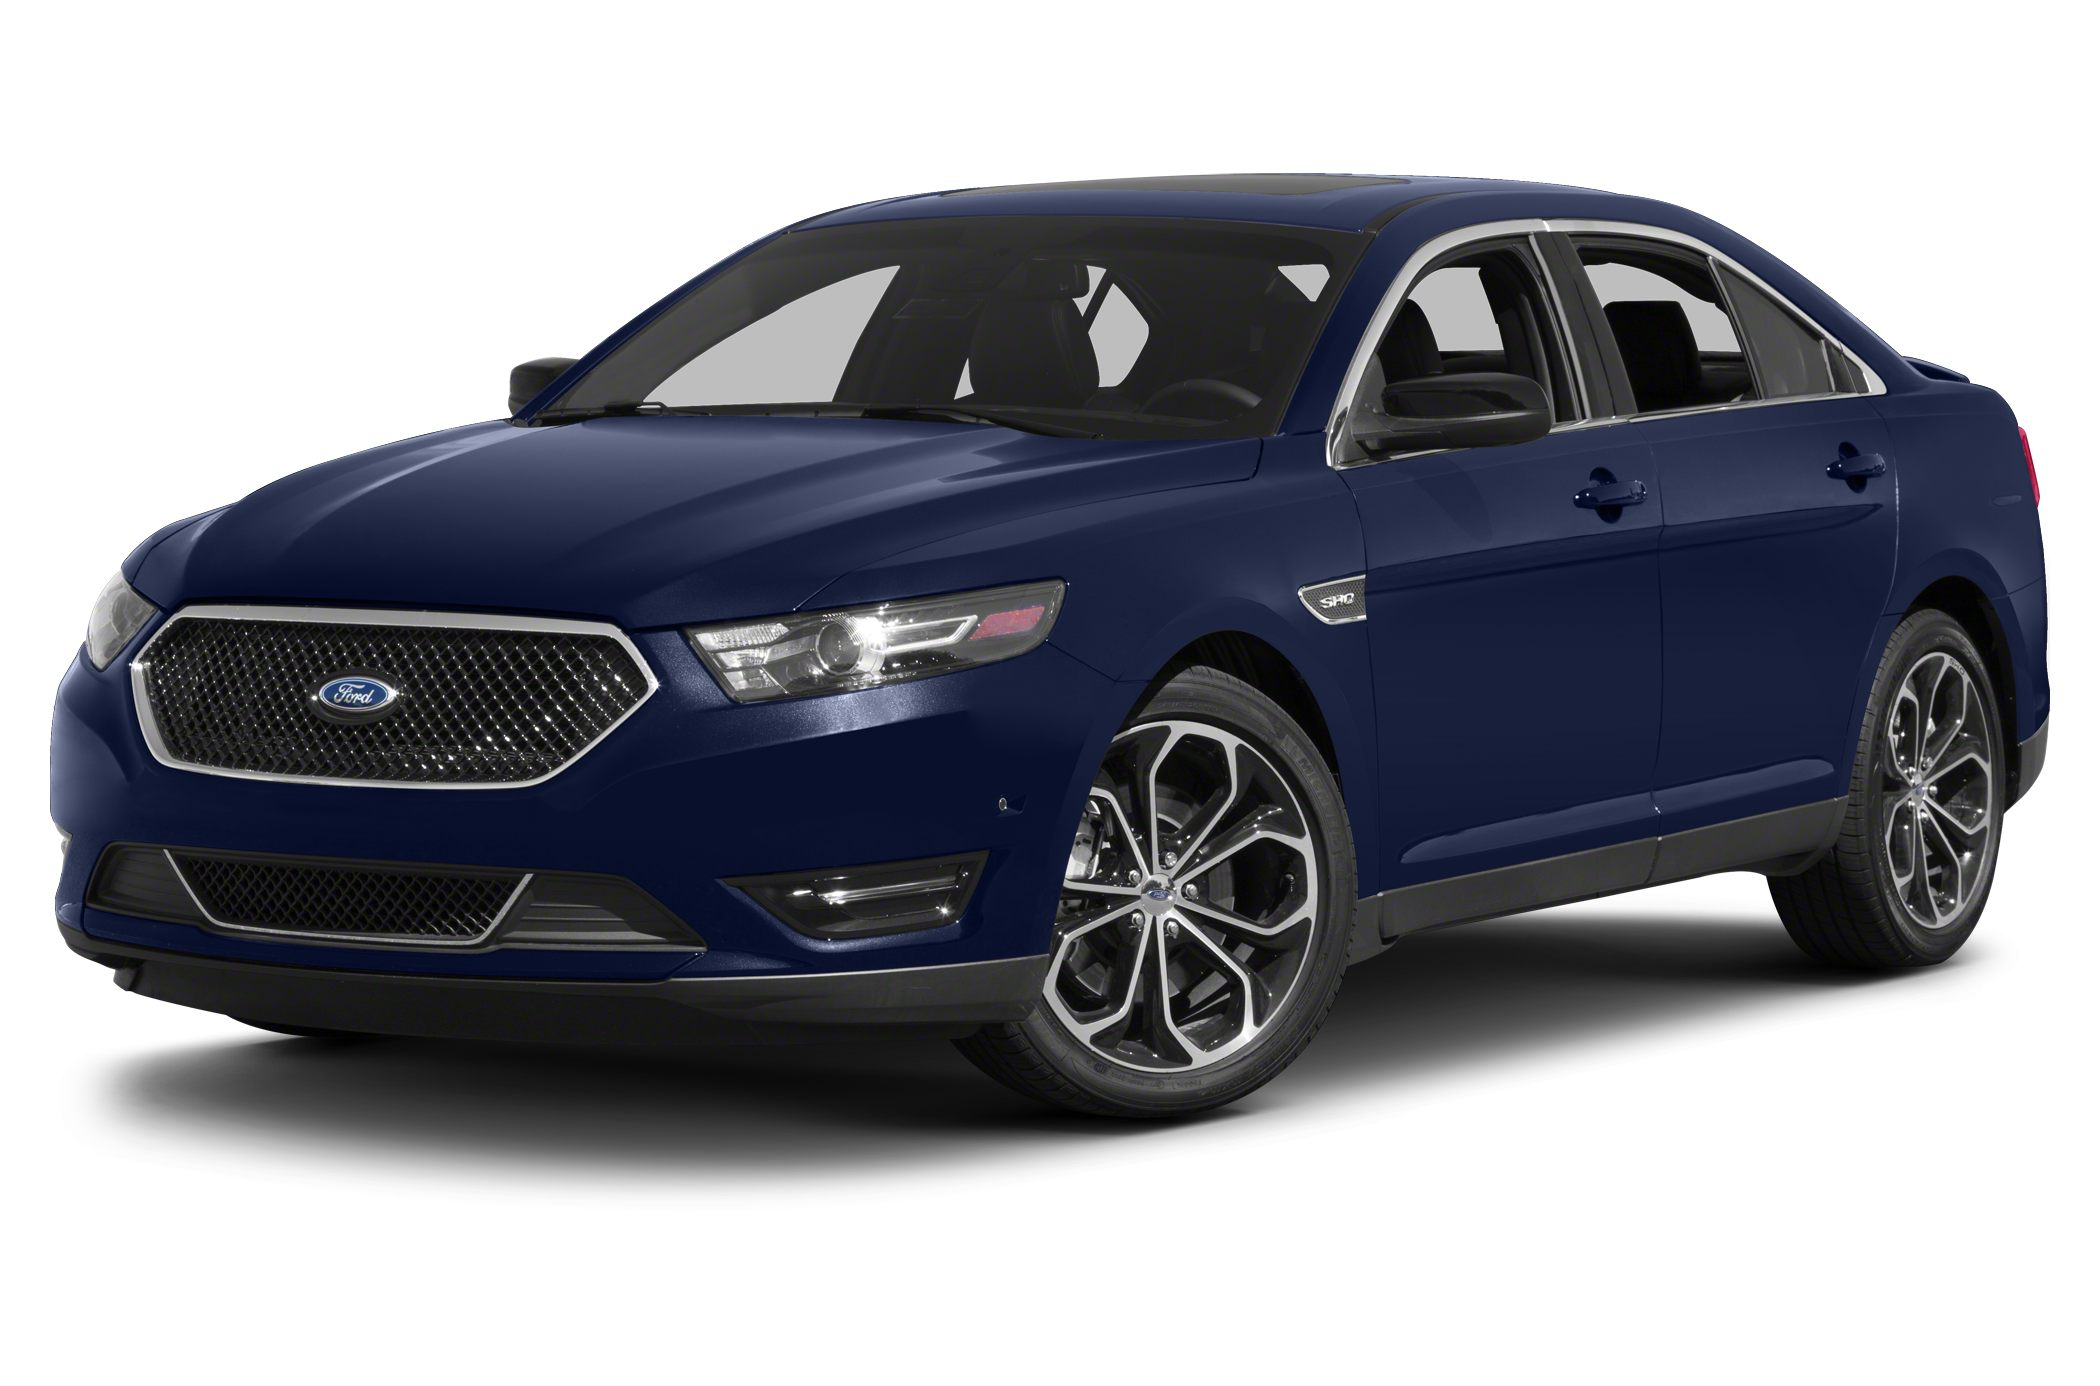 2014 Ford Taurus SHO Sedan for sale in Roswell for $34,900 with 8,080 miles.